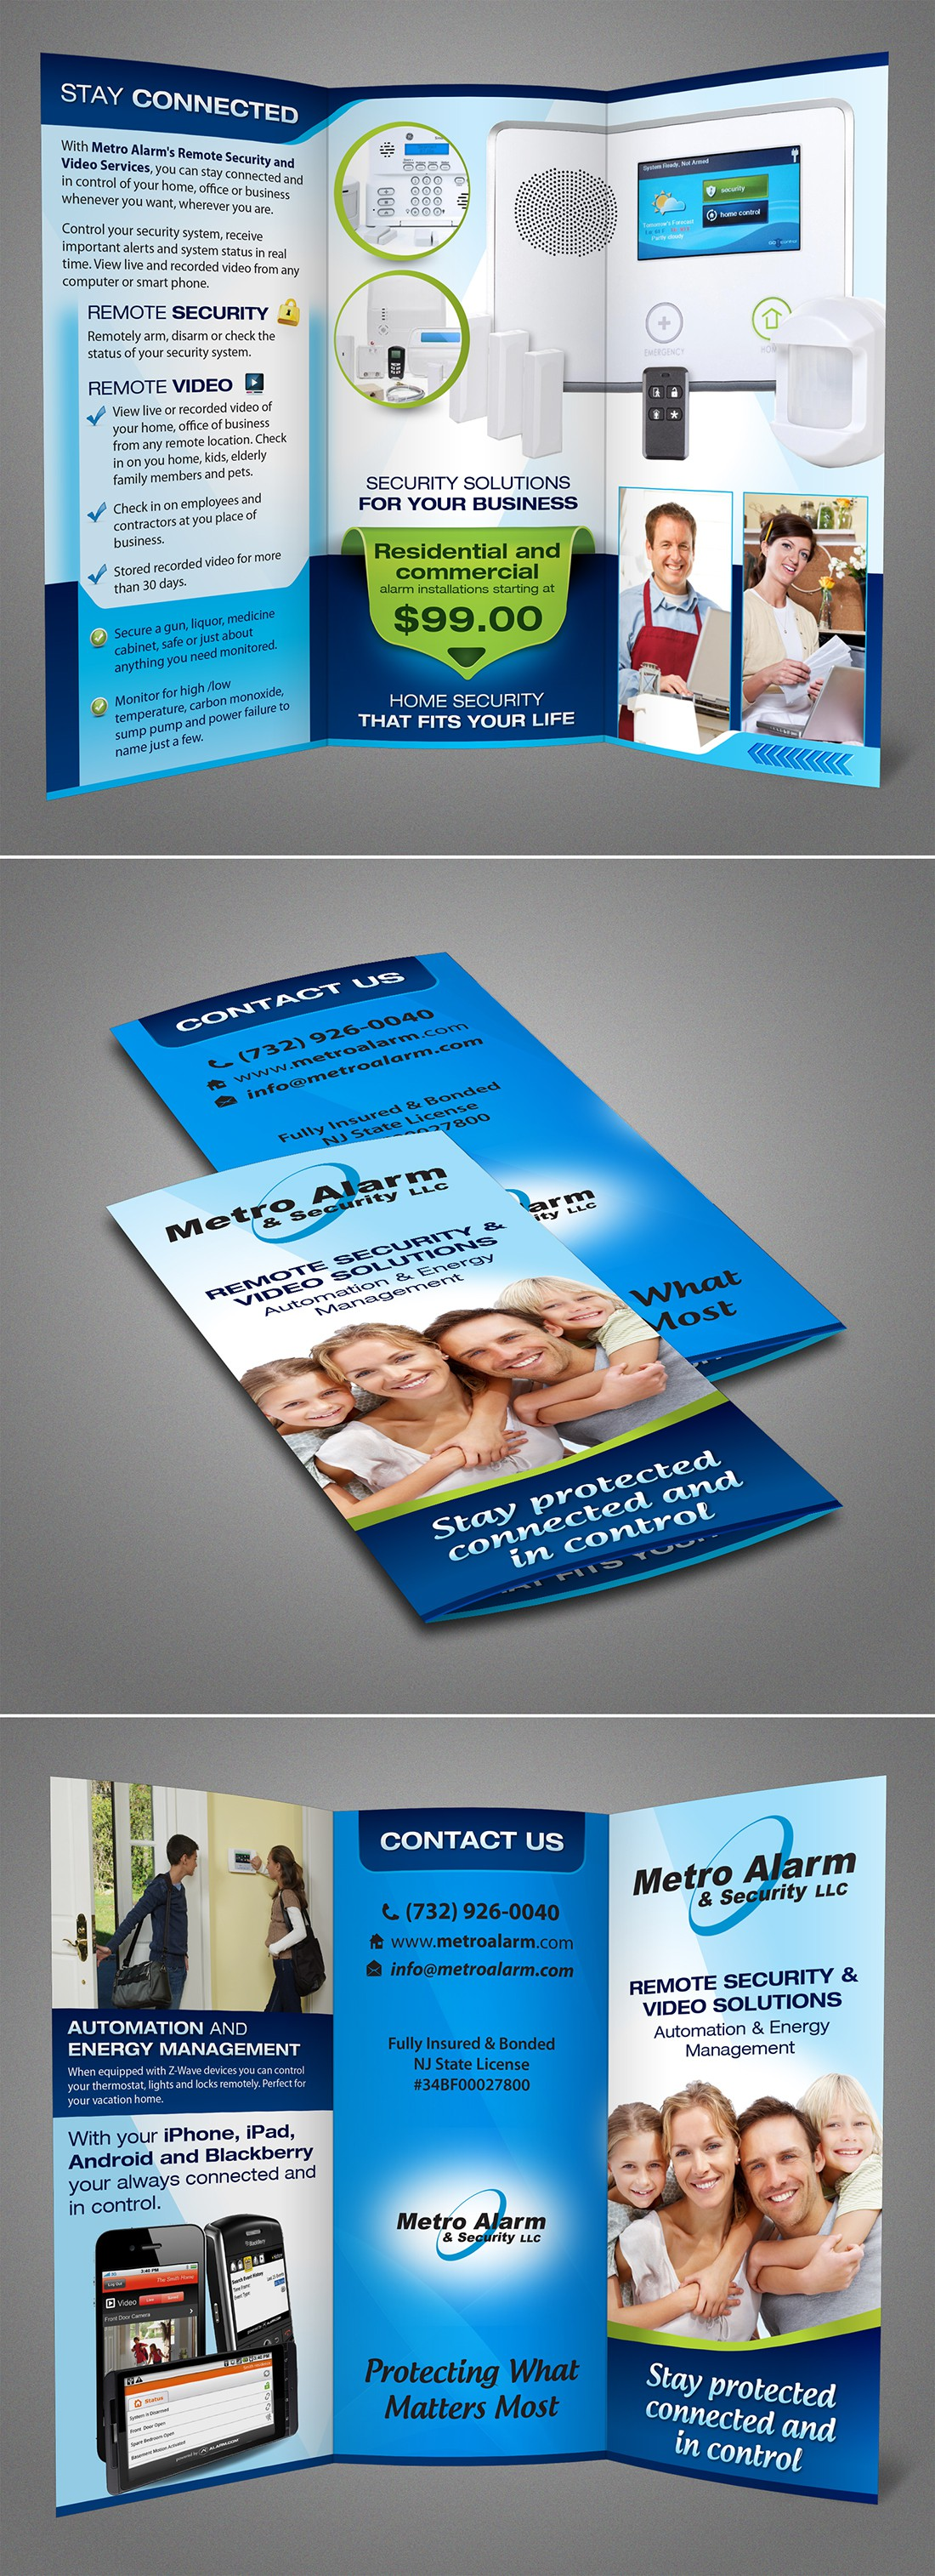 New brochure design wanted for Metro Alarm & Security LLC